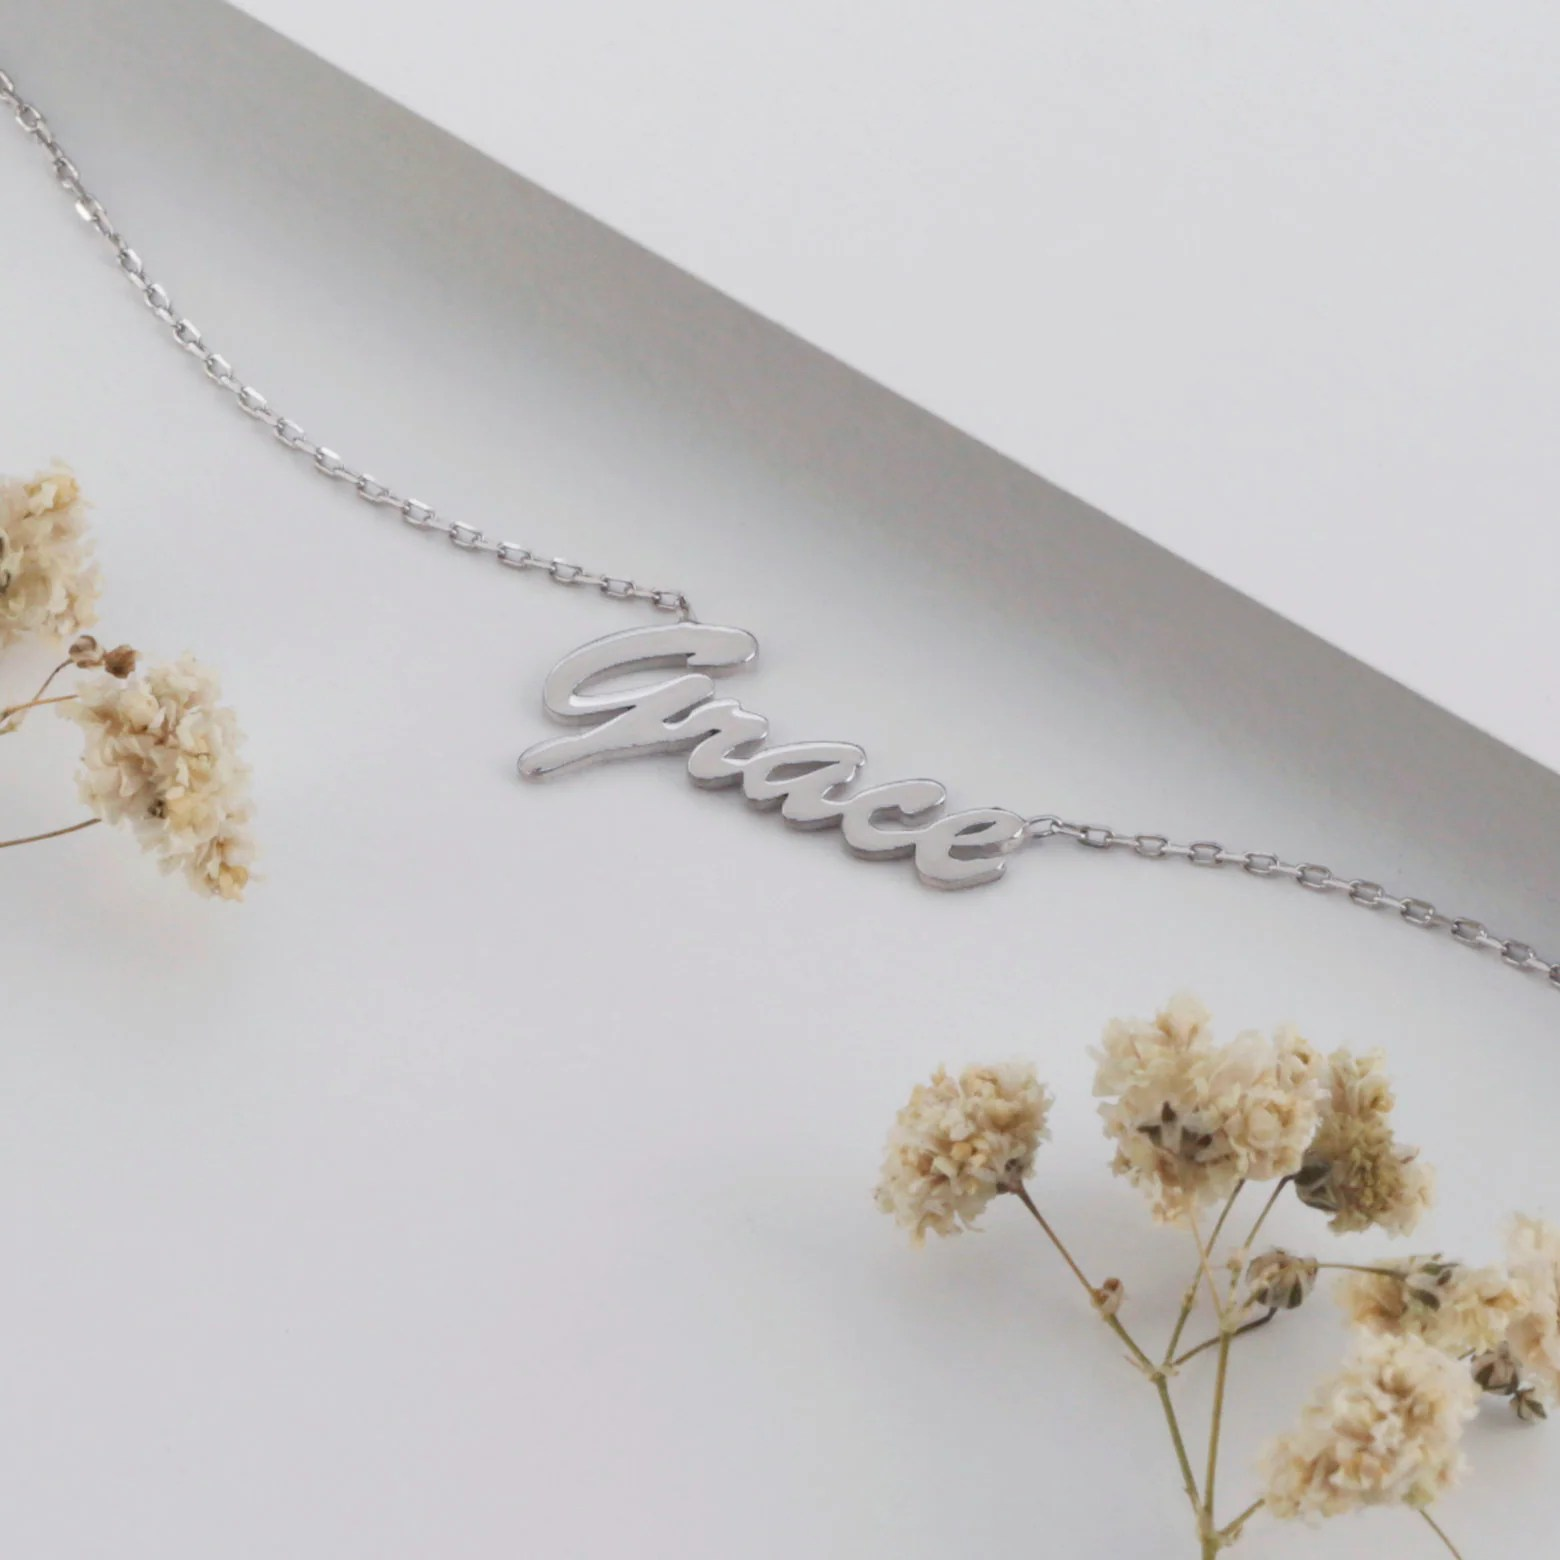 Sterling Silver Name Necklace Name Necklace Gold image 2